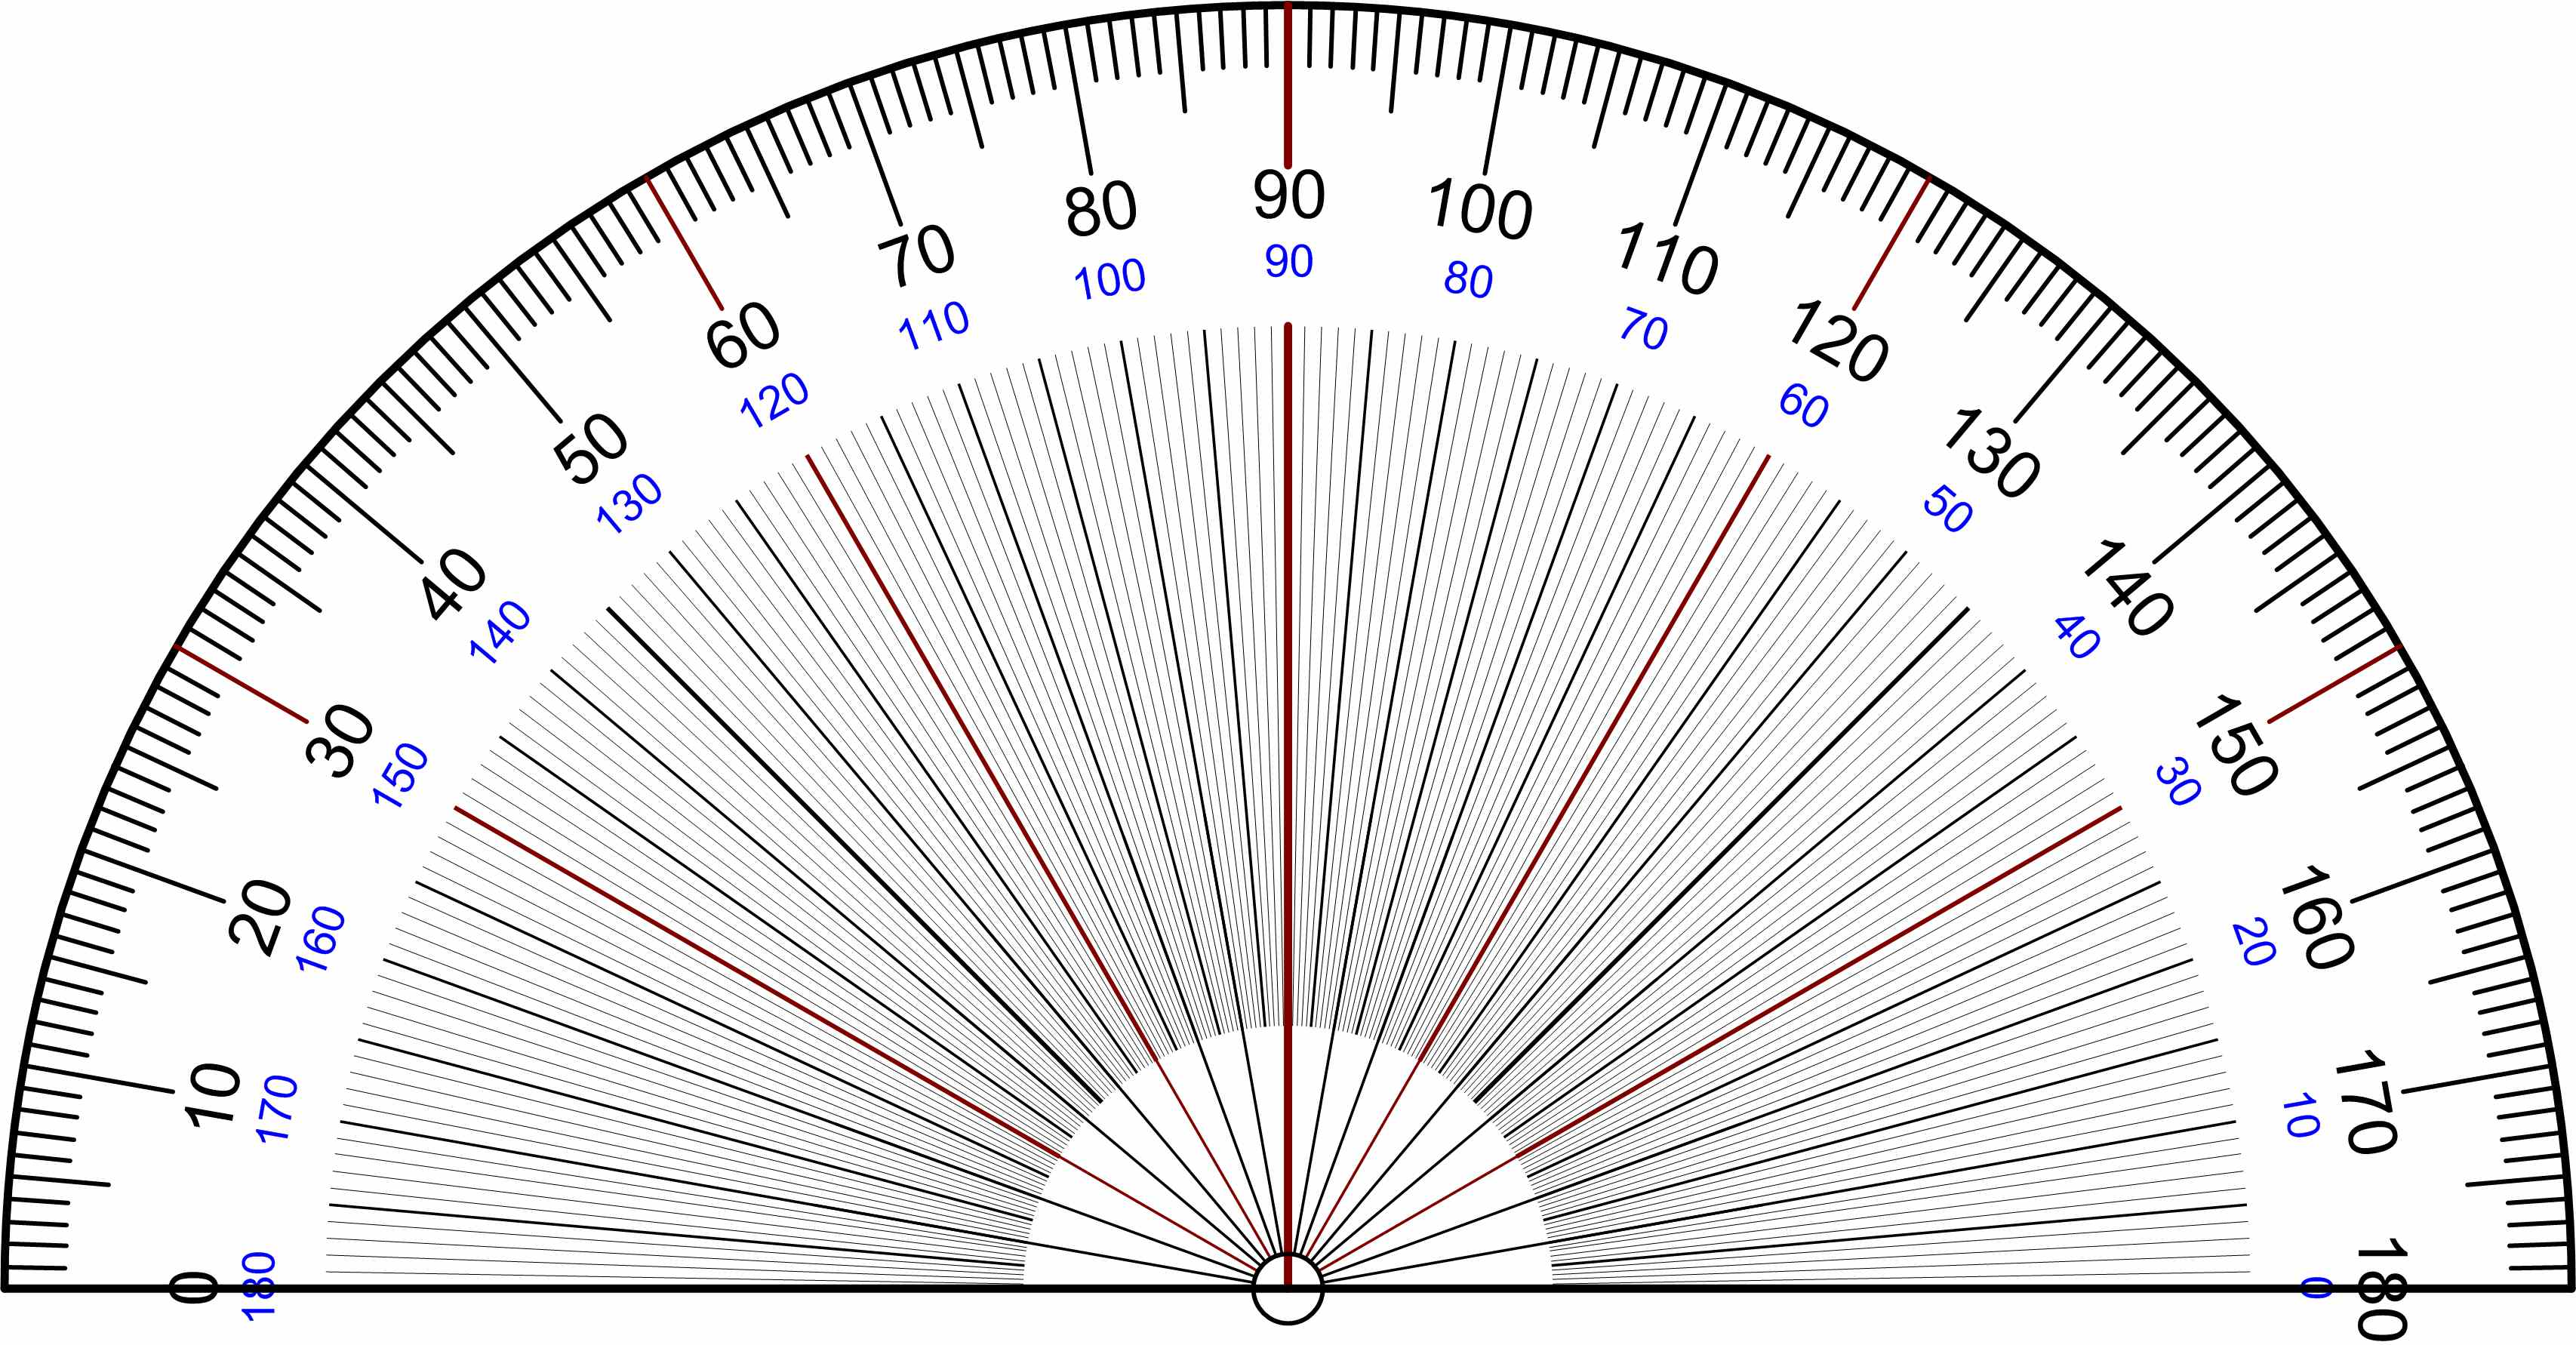 http://upload.wikimedia.org/wikipedia/commons/7/70/Protractor_Rapporteur_Degrees_V3.jpg